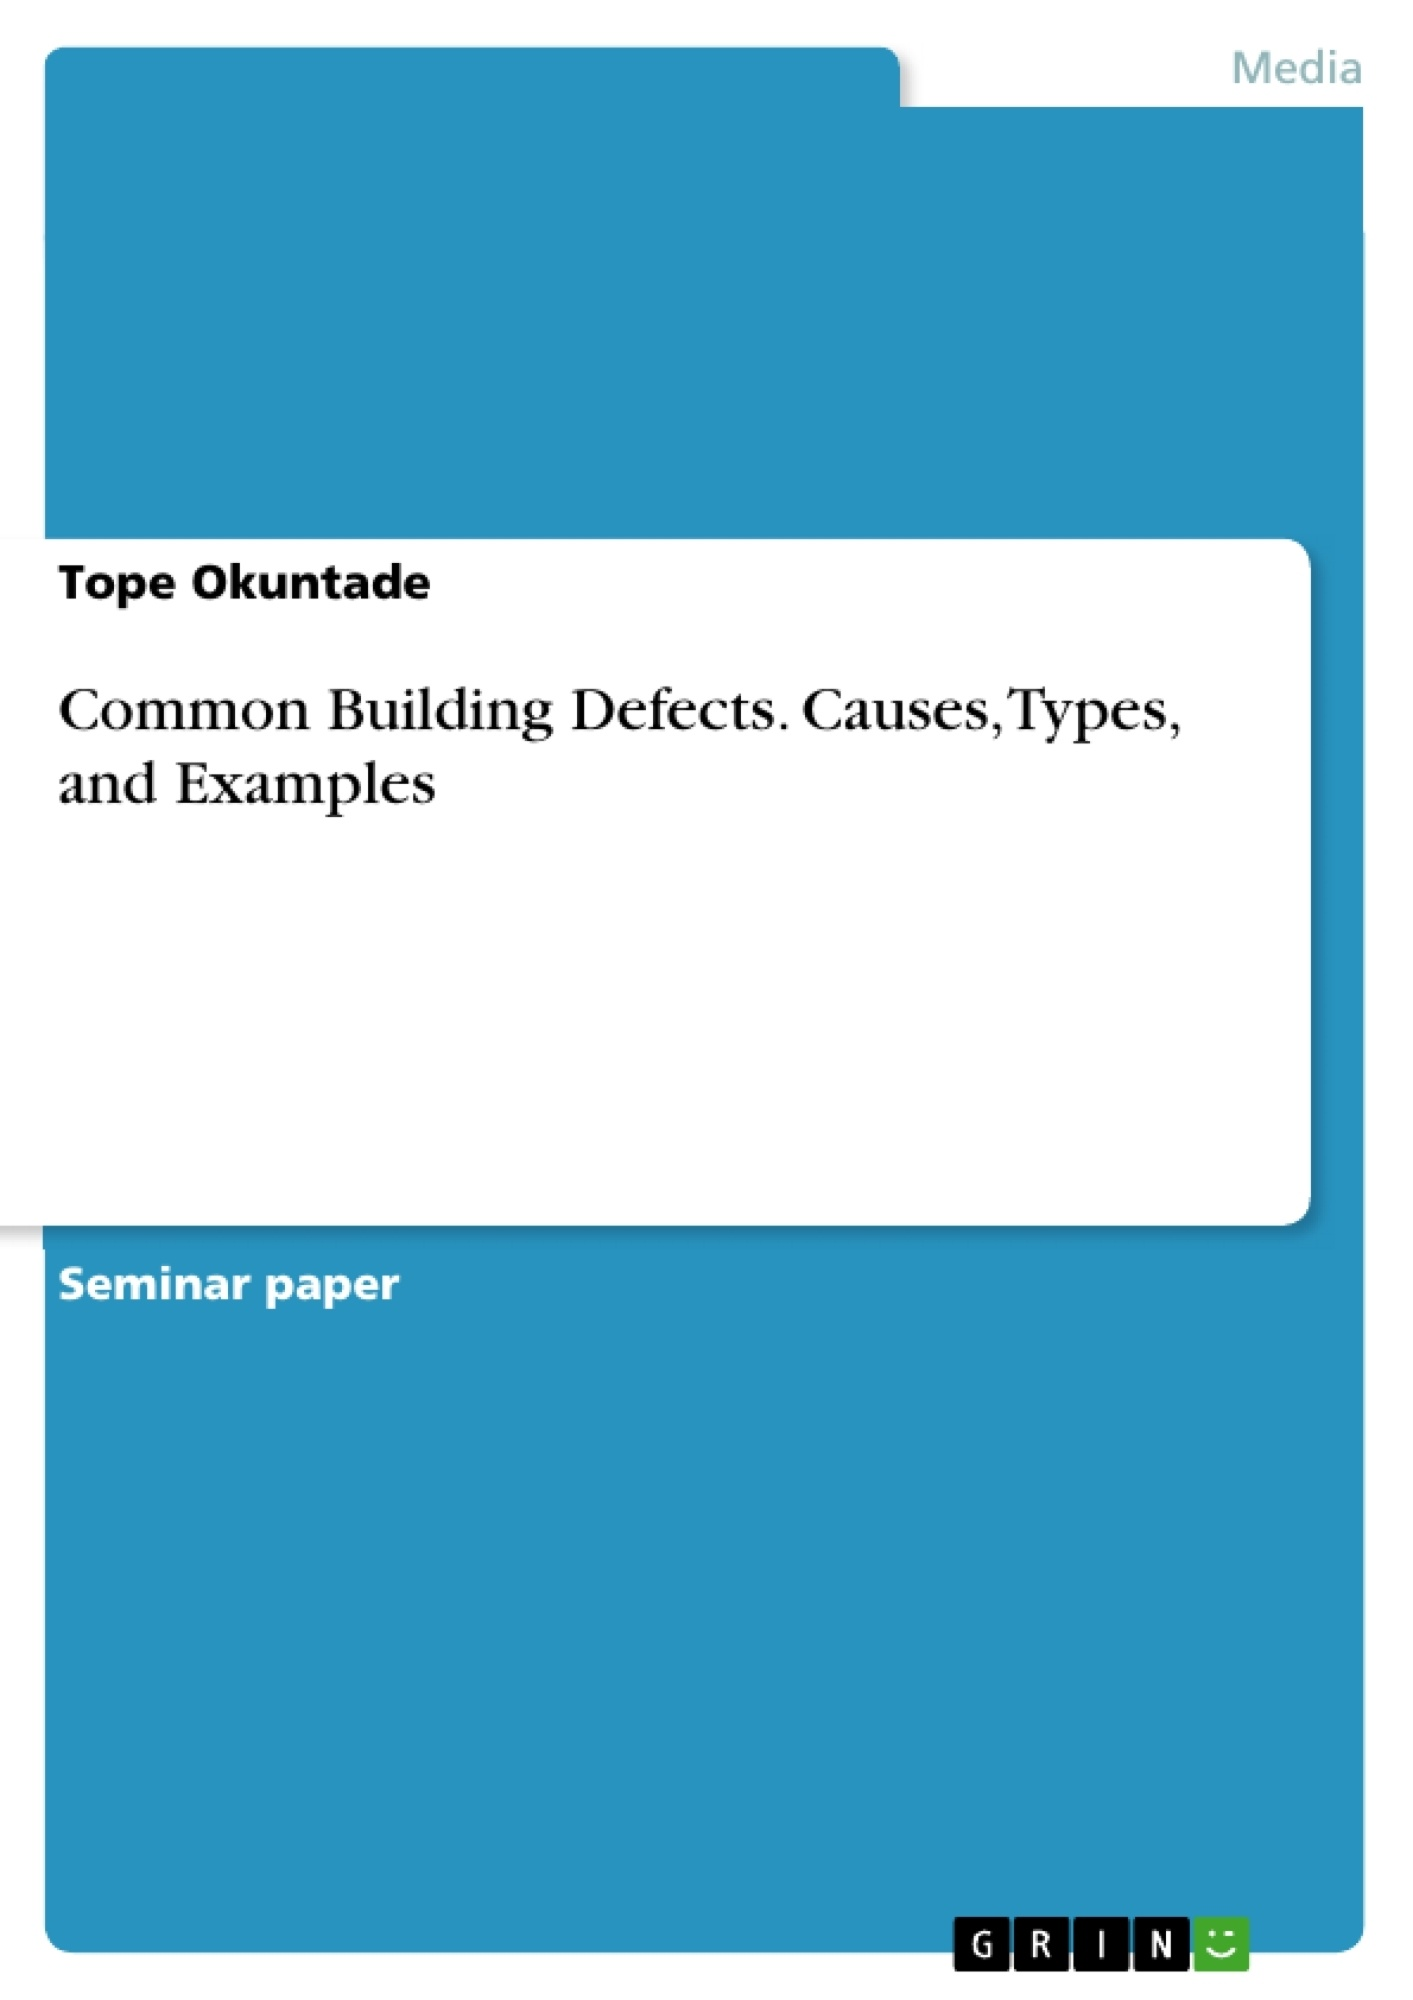 Title: Common Building Defects. Causes, Types, and Examples